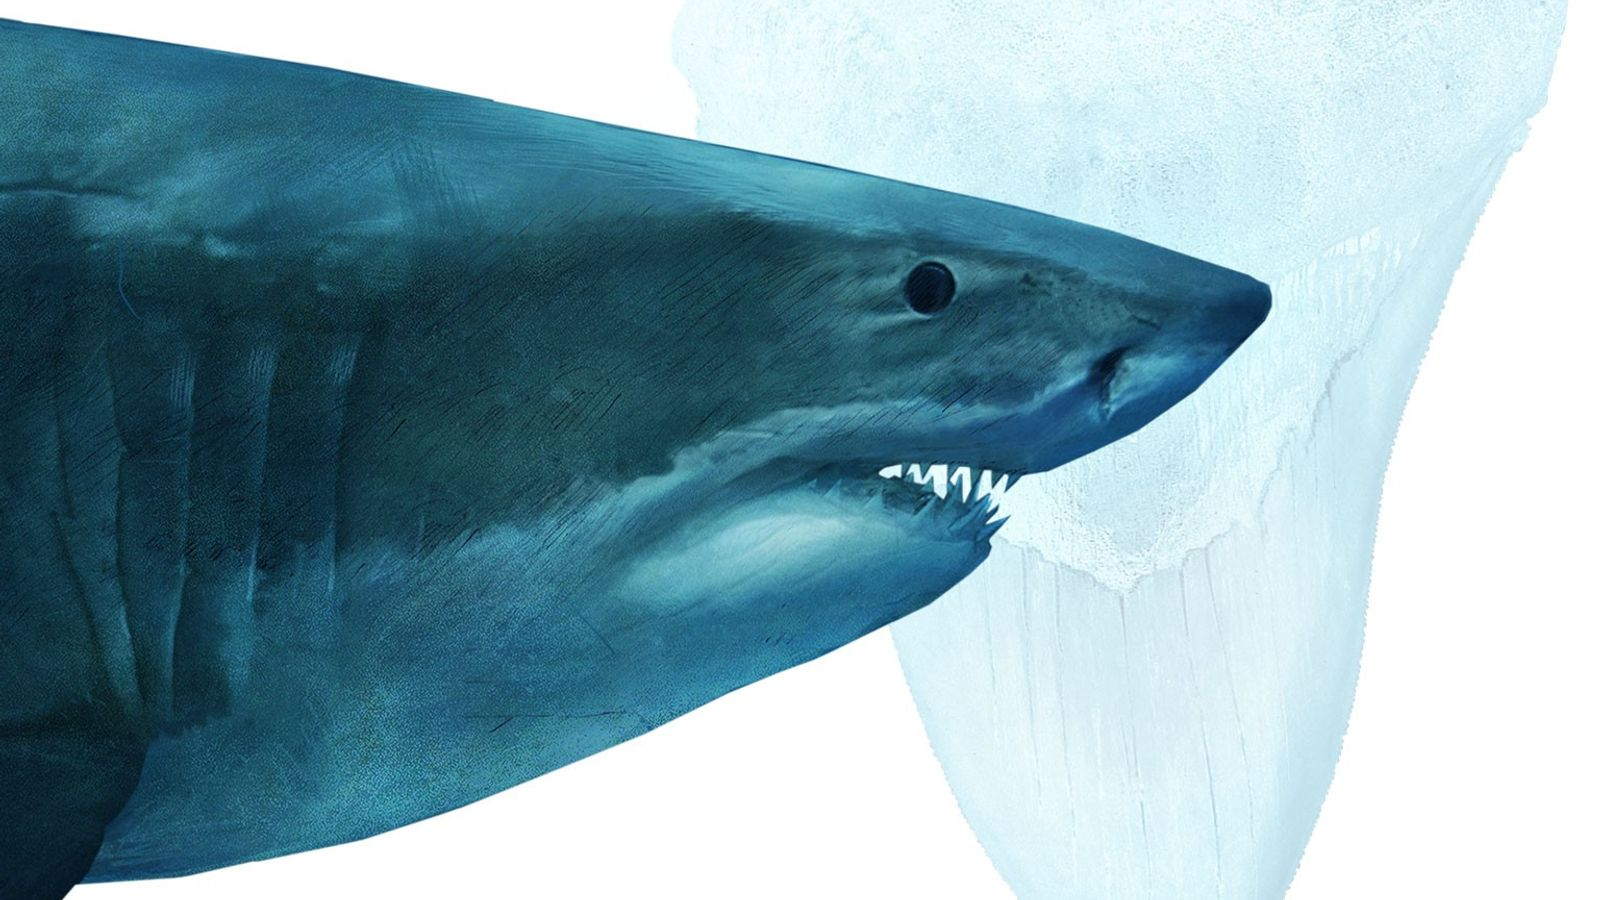 Megalodon were the rulers of the ancient oceans. The massive creatures grew up to 60 feet ...